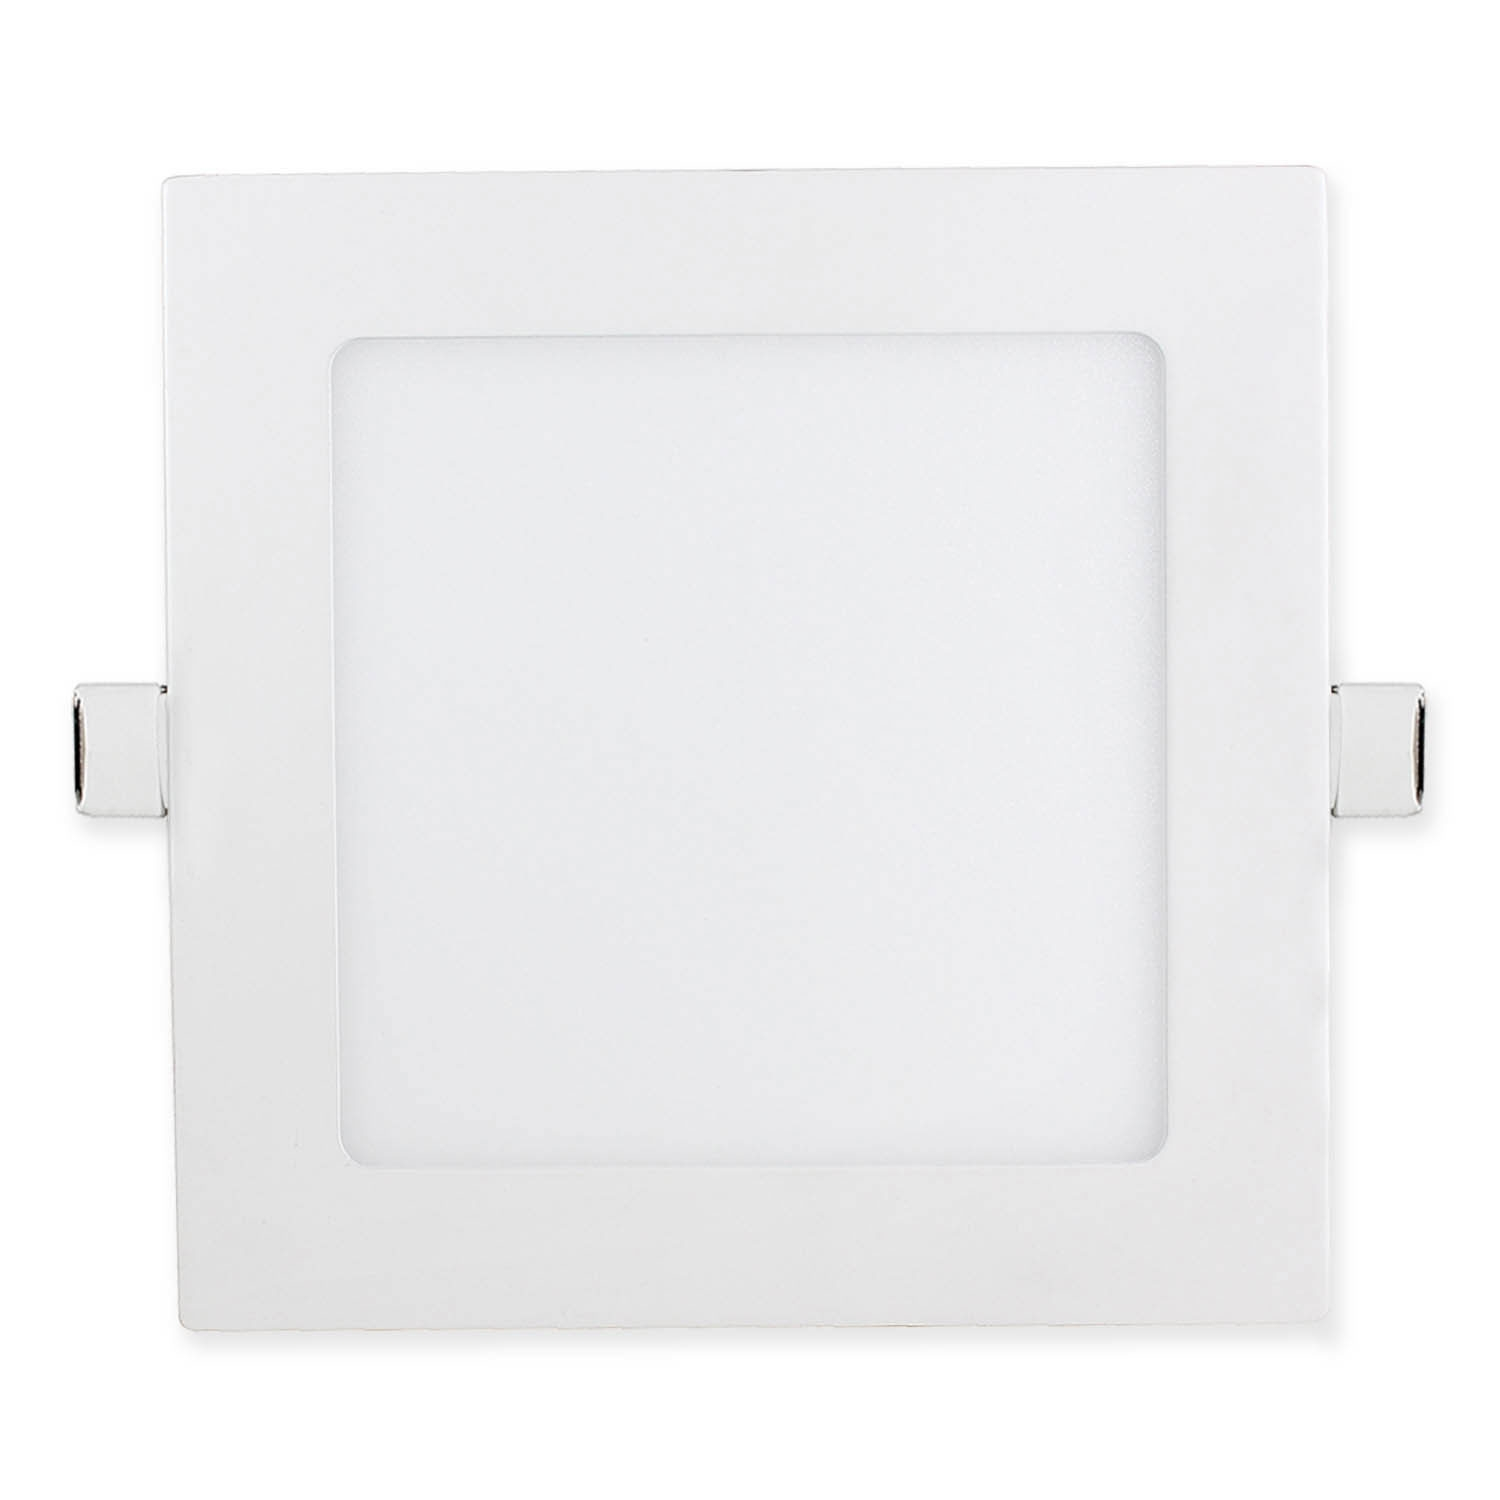 Focos downlight led cocina finest downlight led with focos downlight led cocina downlight - Iluminacion led cocina downlight ...